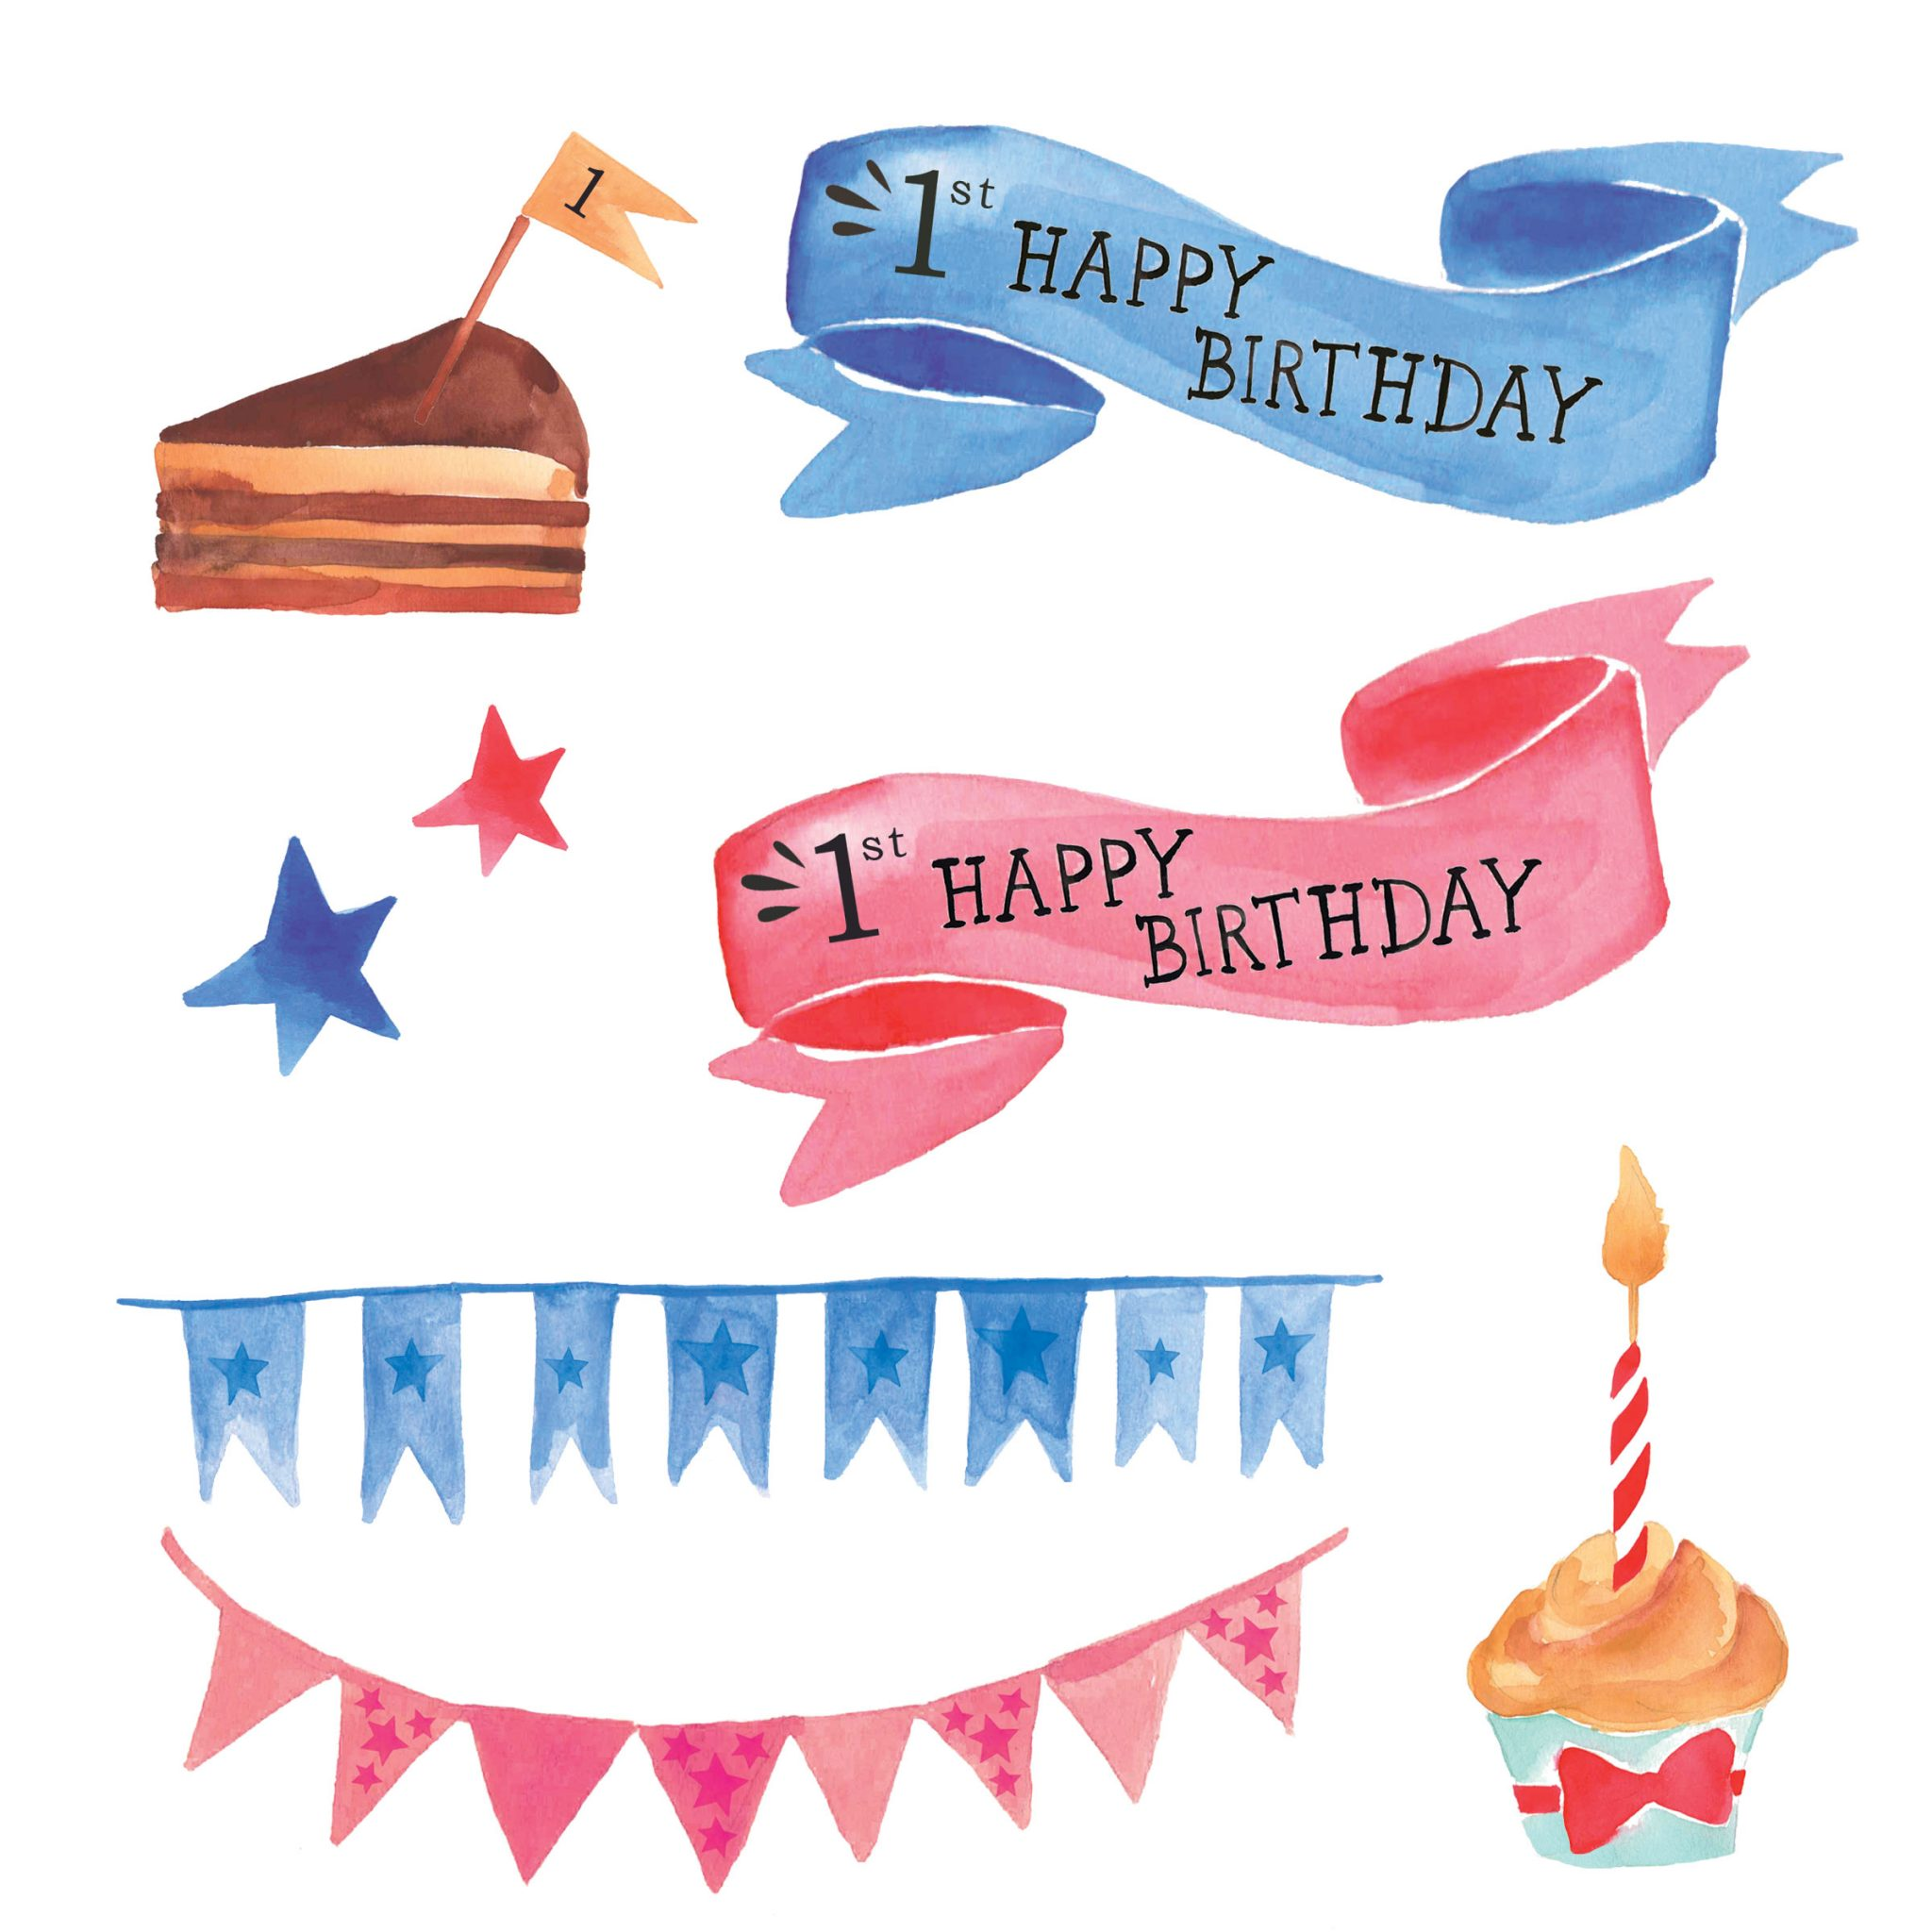 1st birthday clip art.